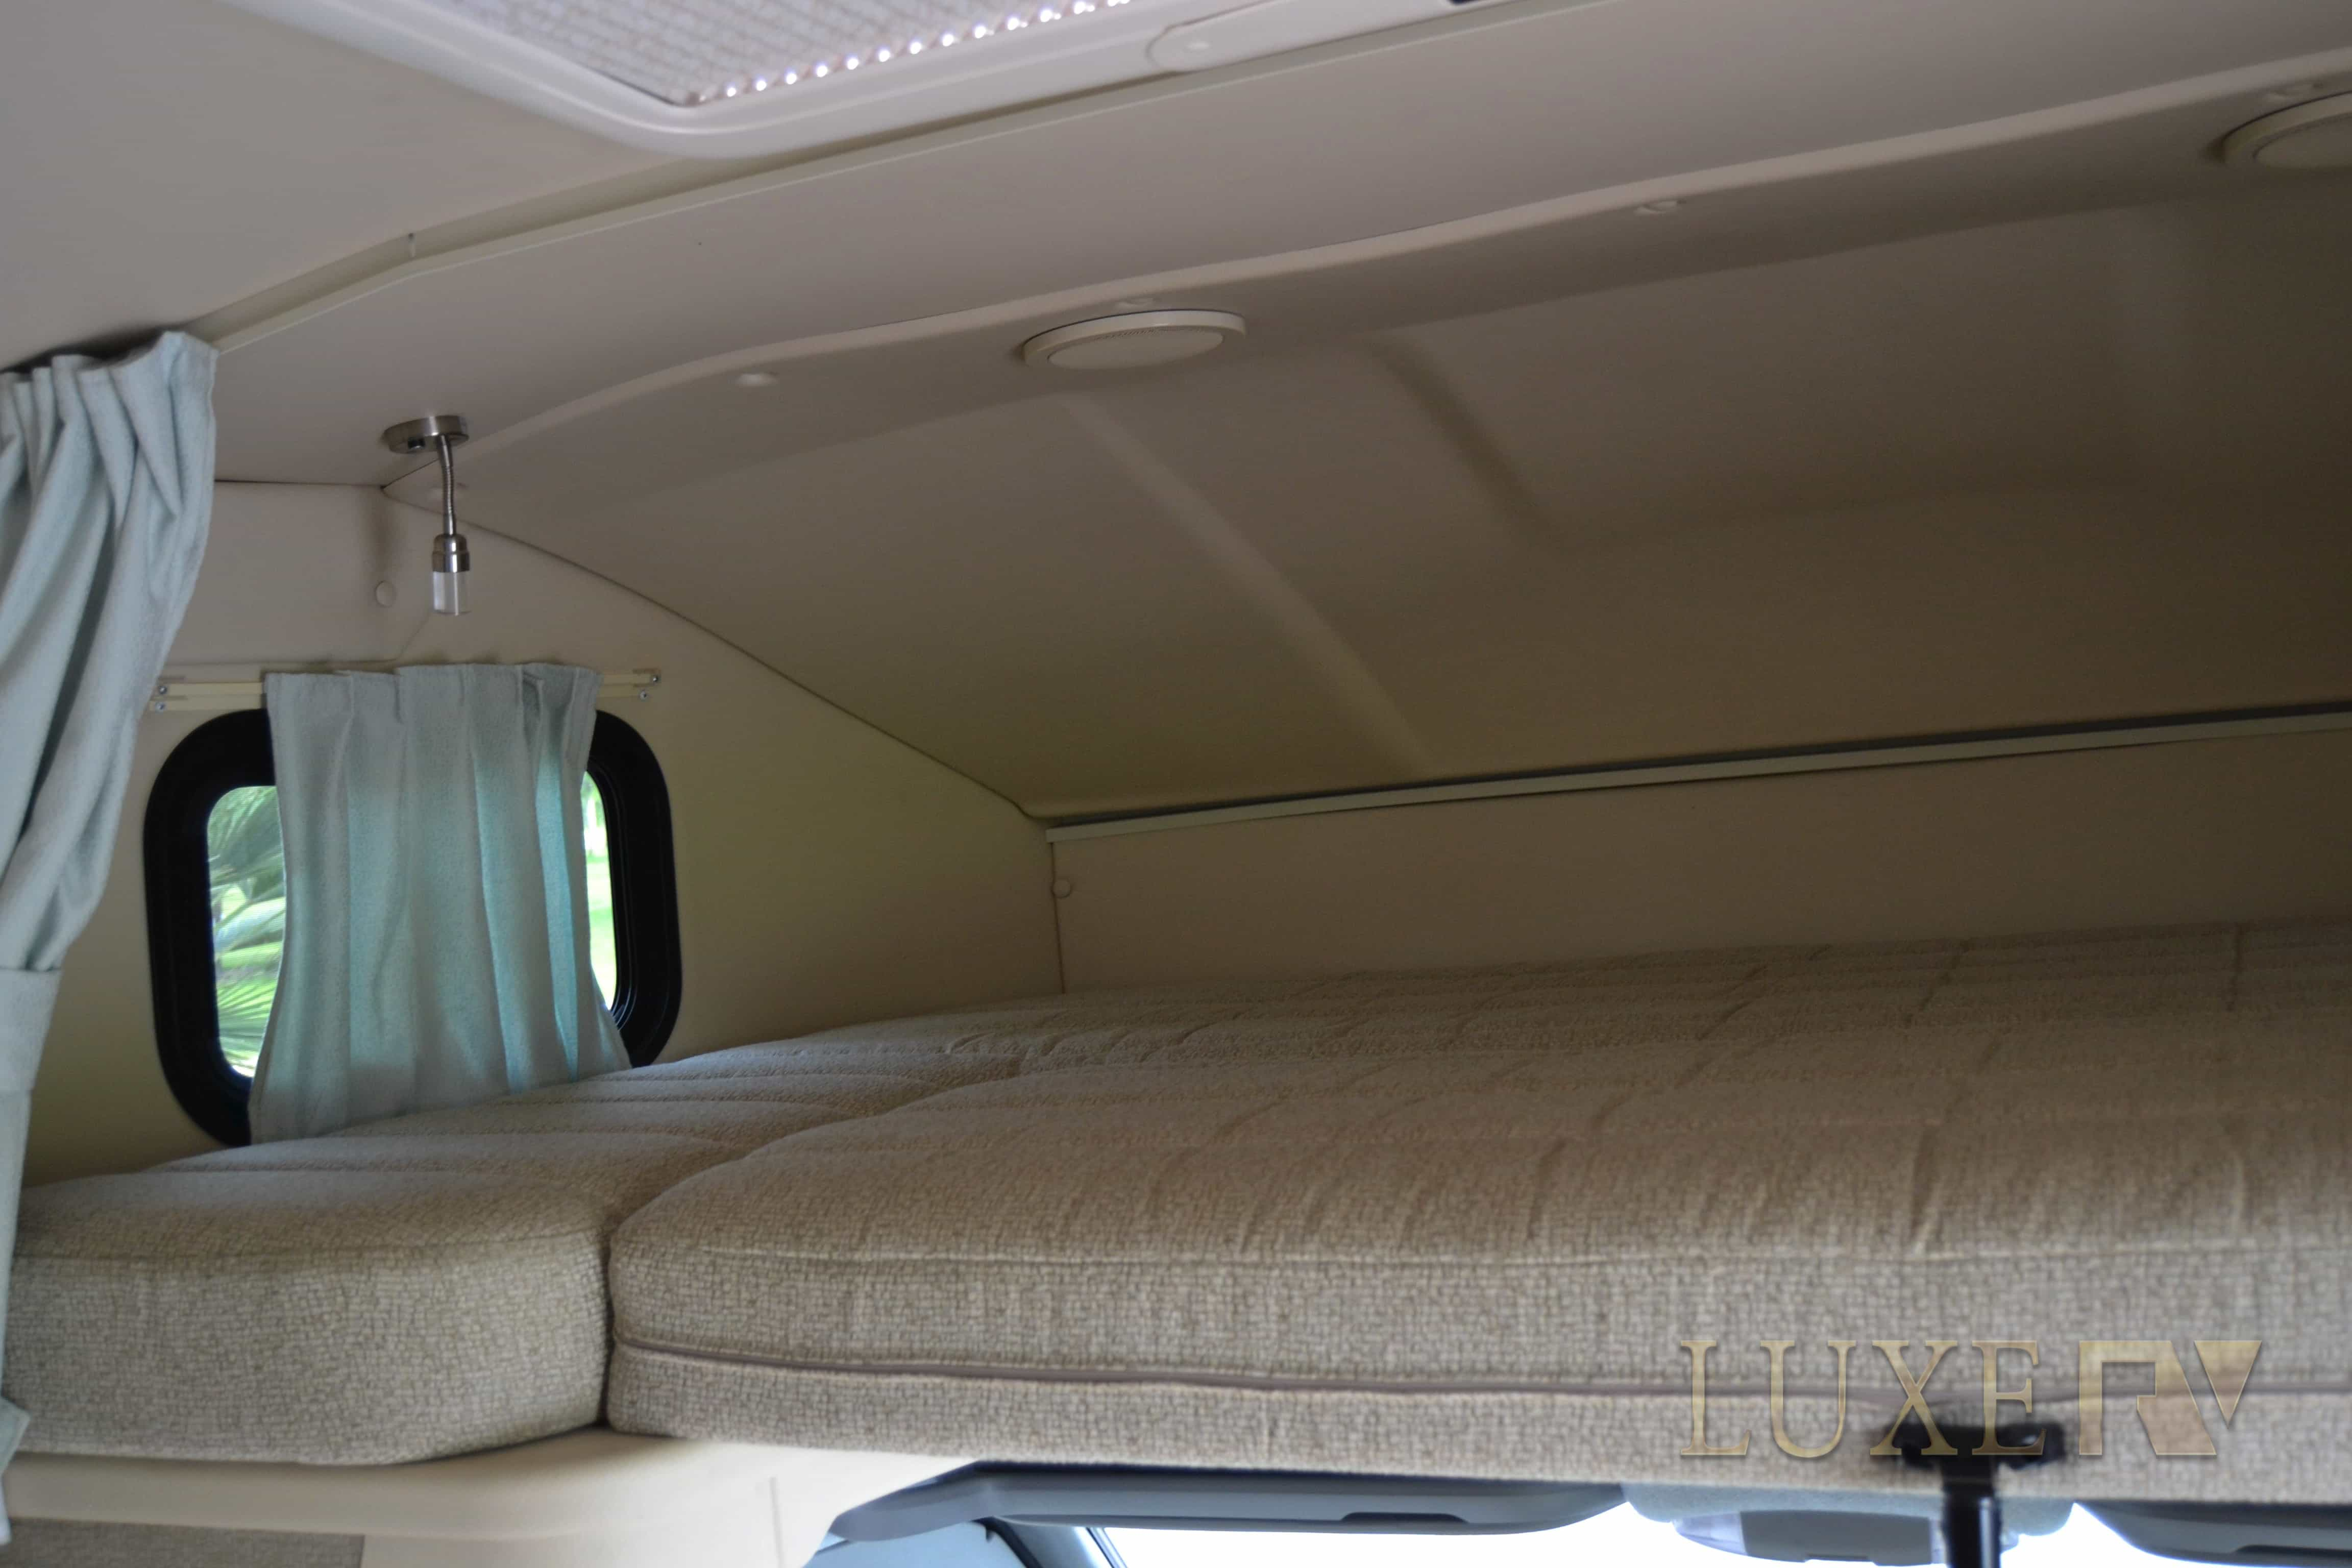 Cabover RV for Rent from Luxe RV